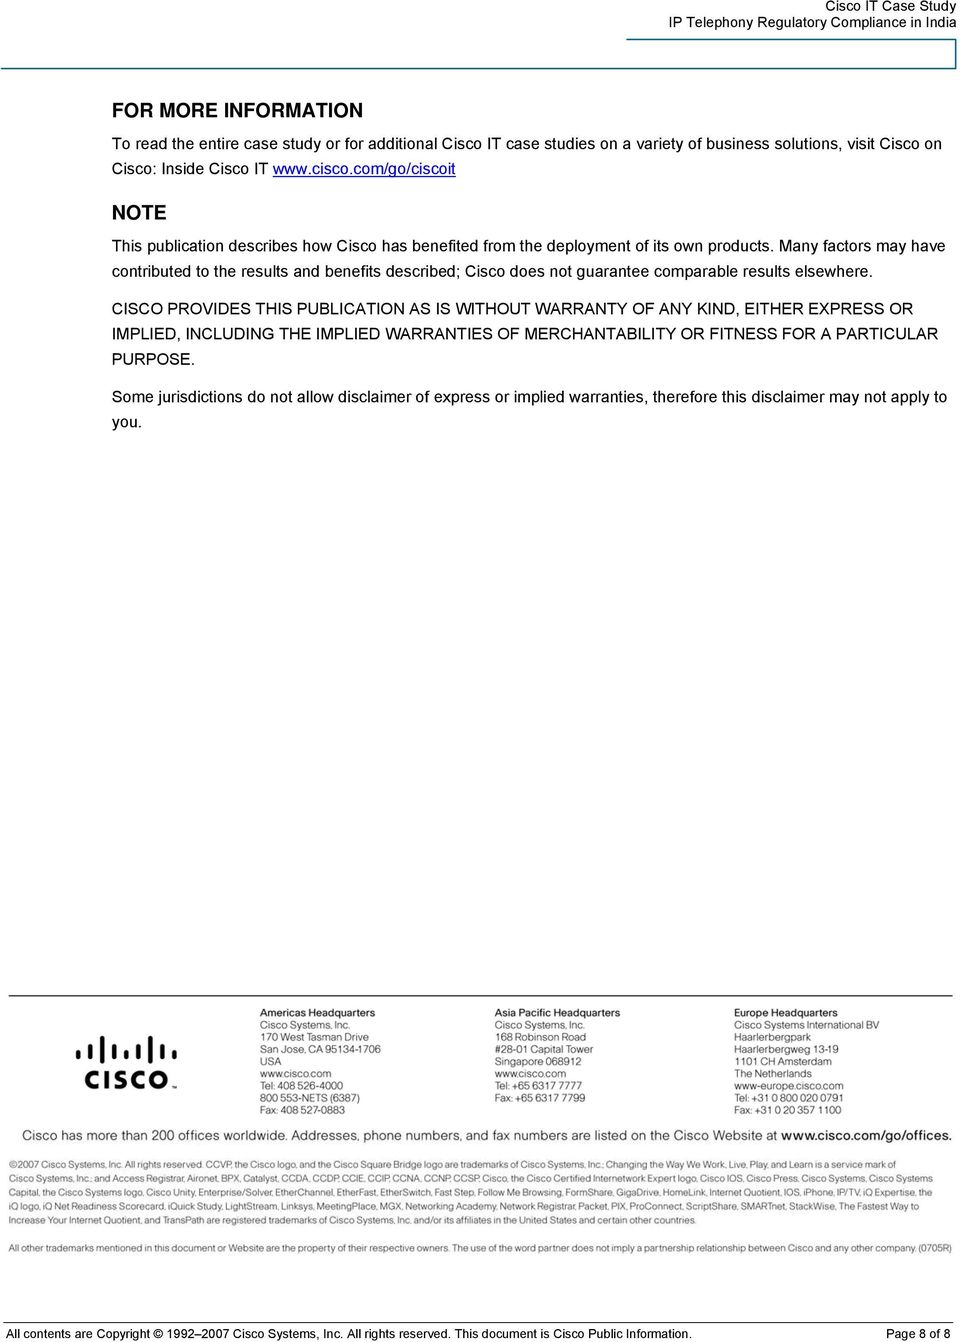 Many factors may have contributed to the results and benefits described; Cisco does not guarantee comparable results elsewhere.